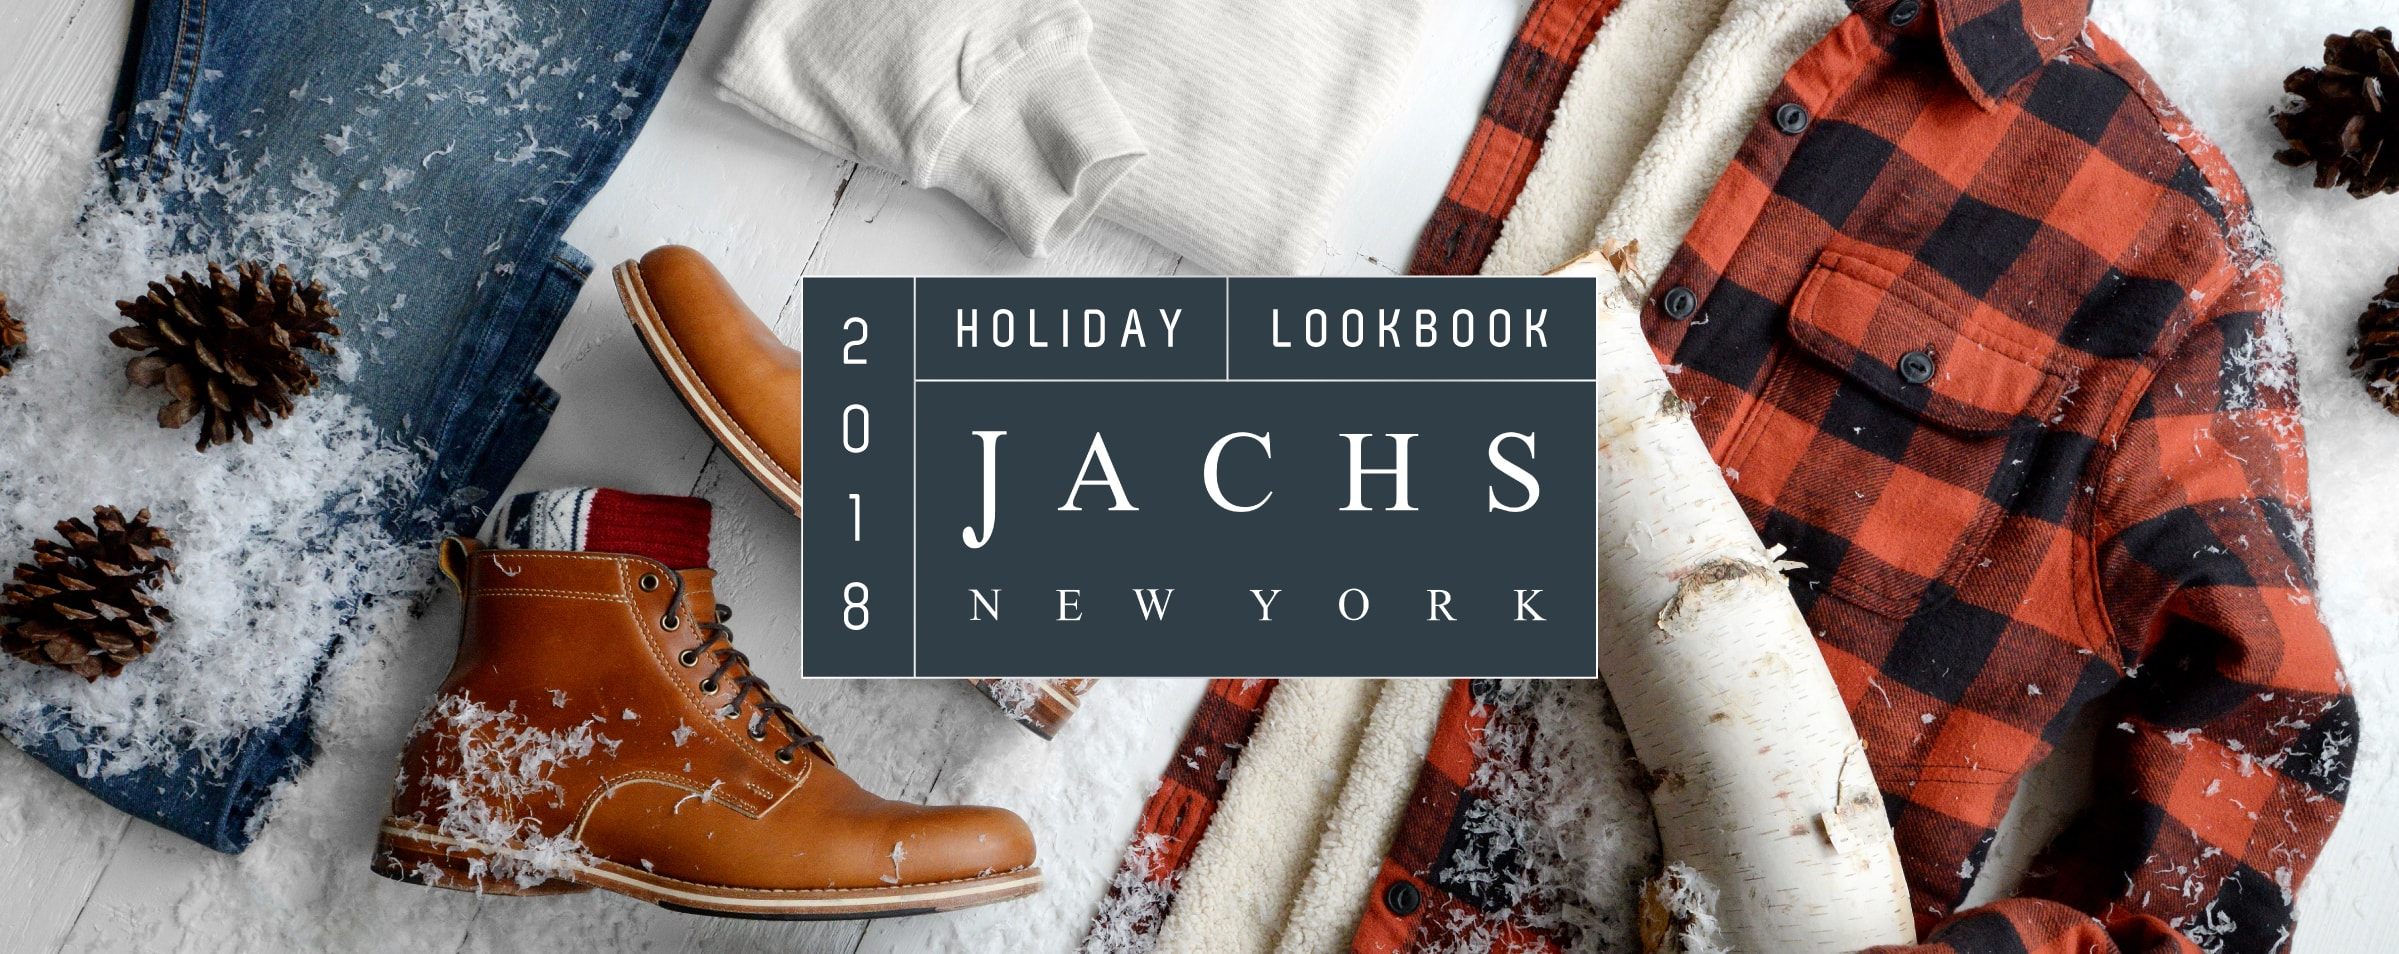 JachsNY Holiday Lookbook 2018